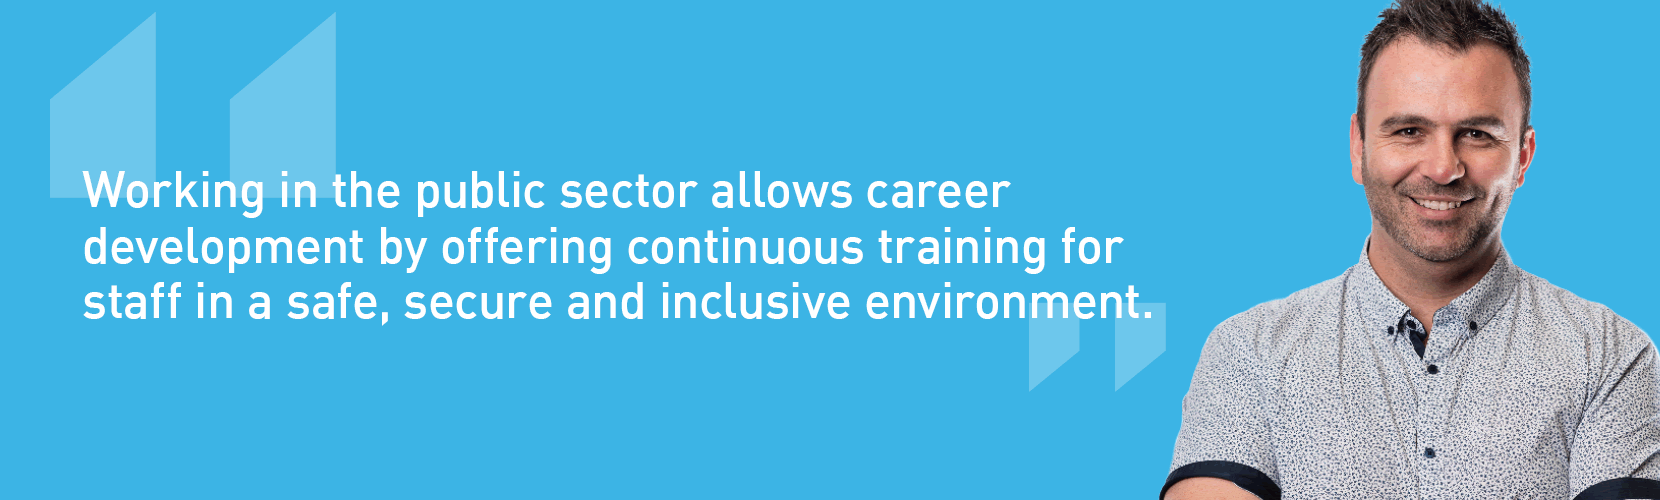 Working in the public sector allows career development by offering continuous training for staff in a safe, secure and inclusive environment